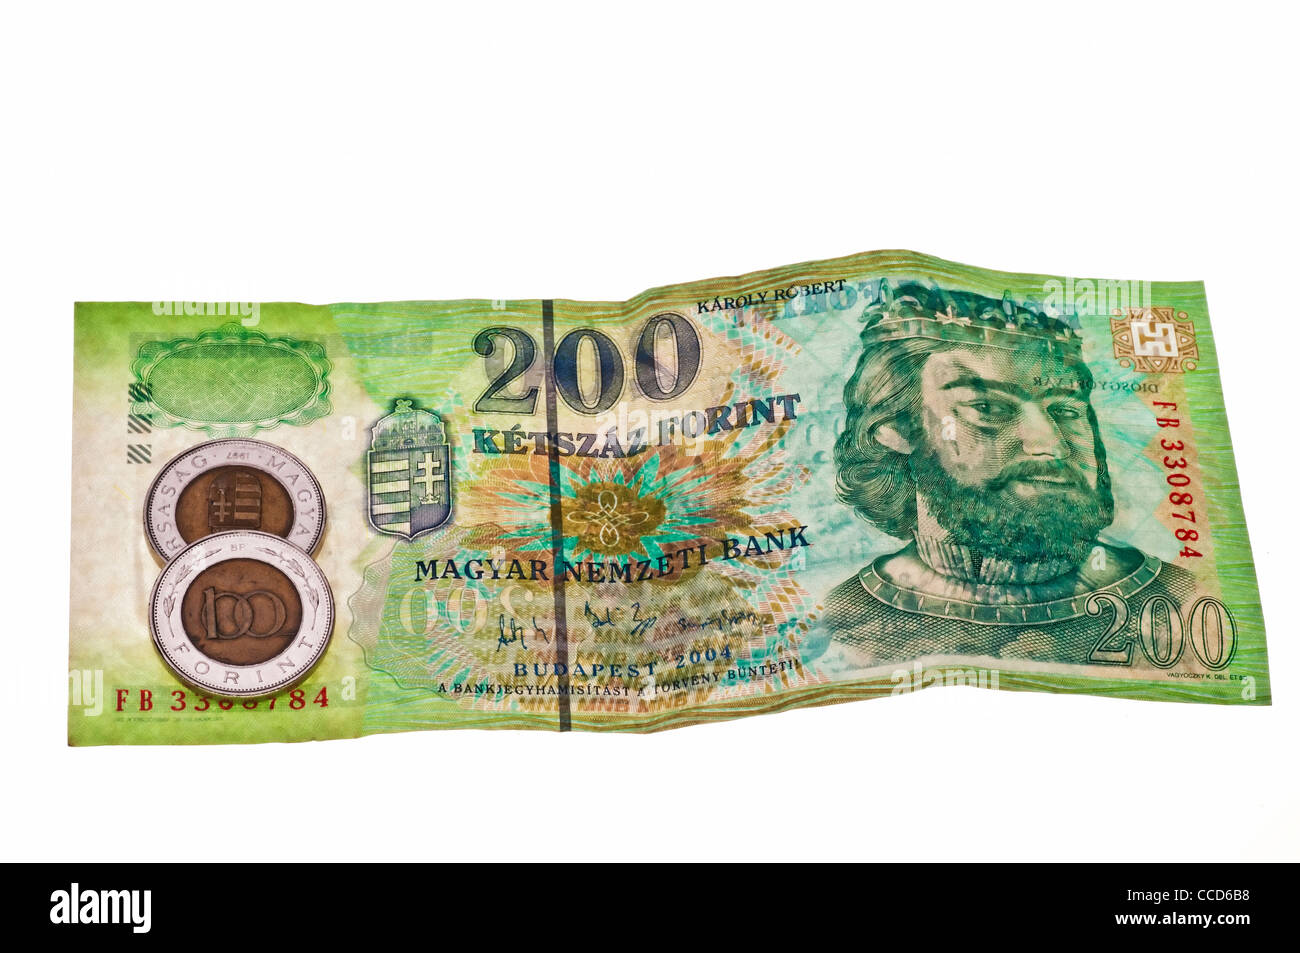 currency of Hungary - Stock Image